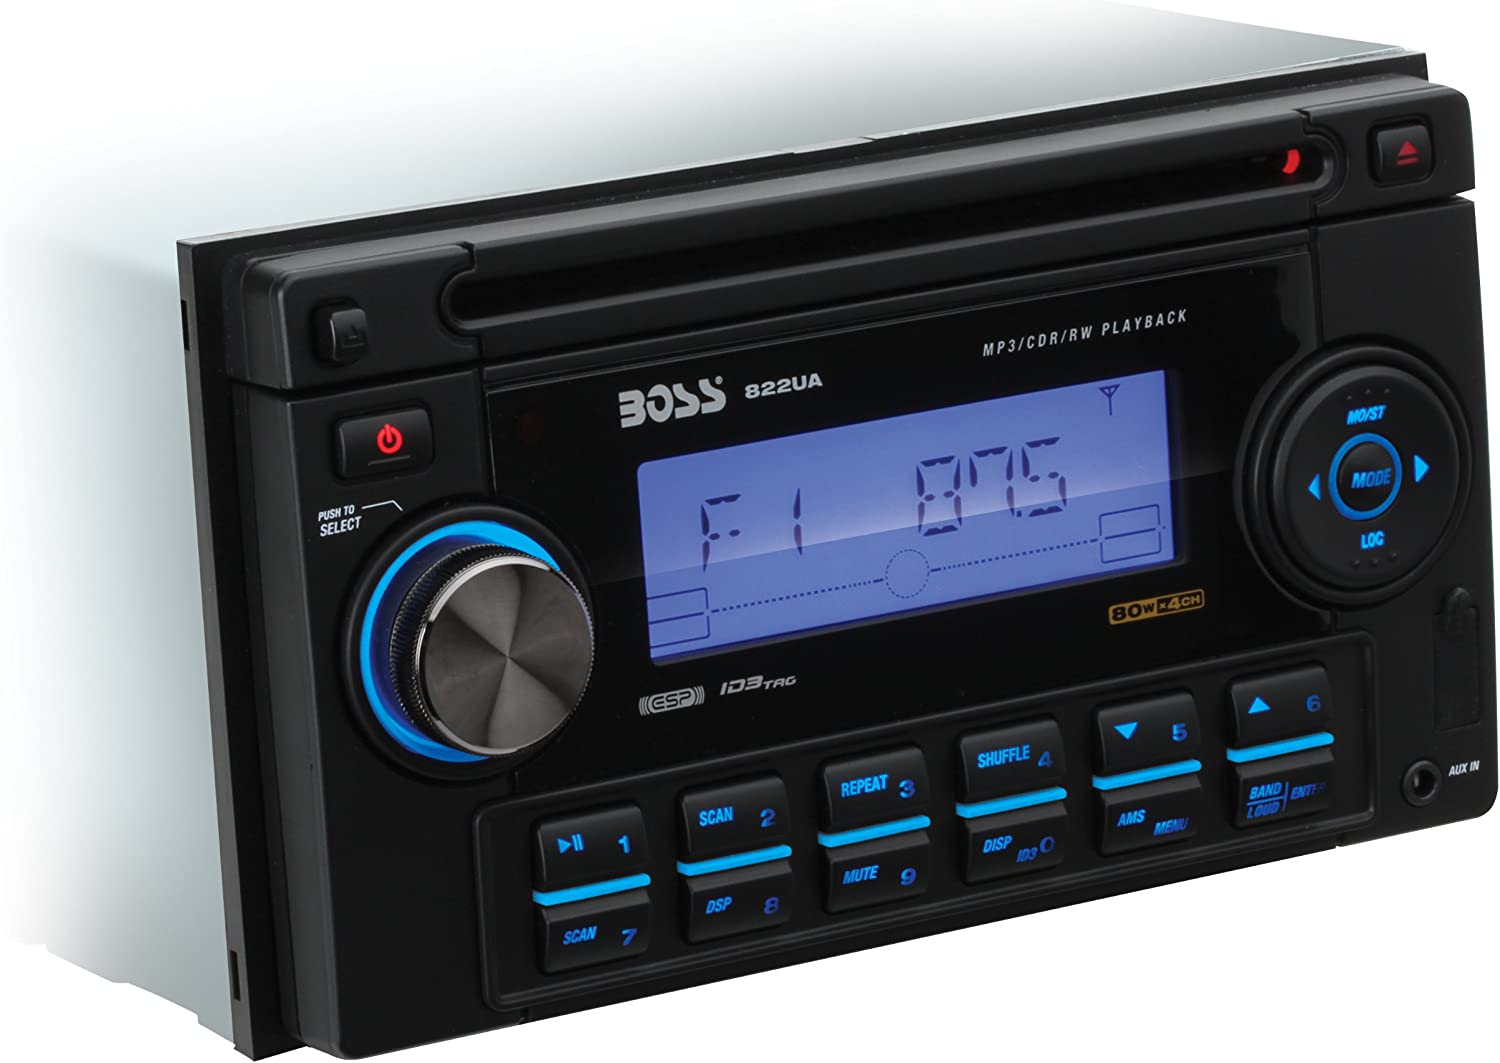 [SODI_2457]   Amazon.com: BOSS Audio Systems 822UA Double-DIN MP3 Player Receiver -  Discontinued by Manufacturer: Car Electronics   Boss 822ua Wiring Harness      Amazon.com